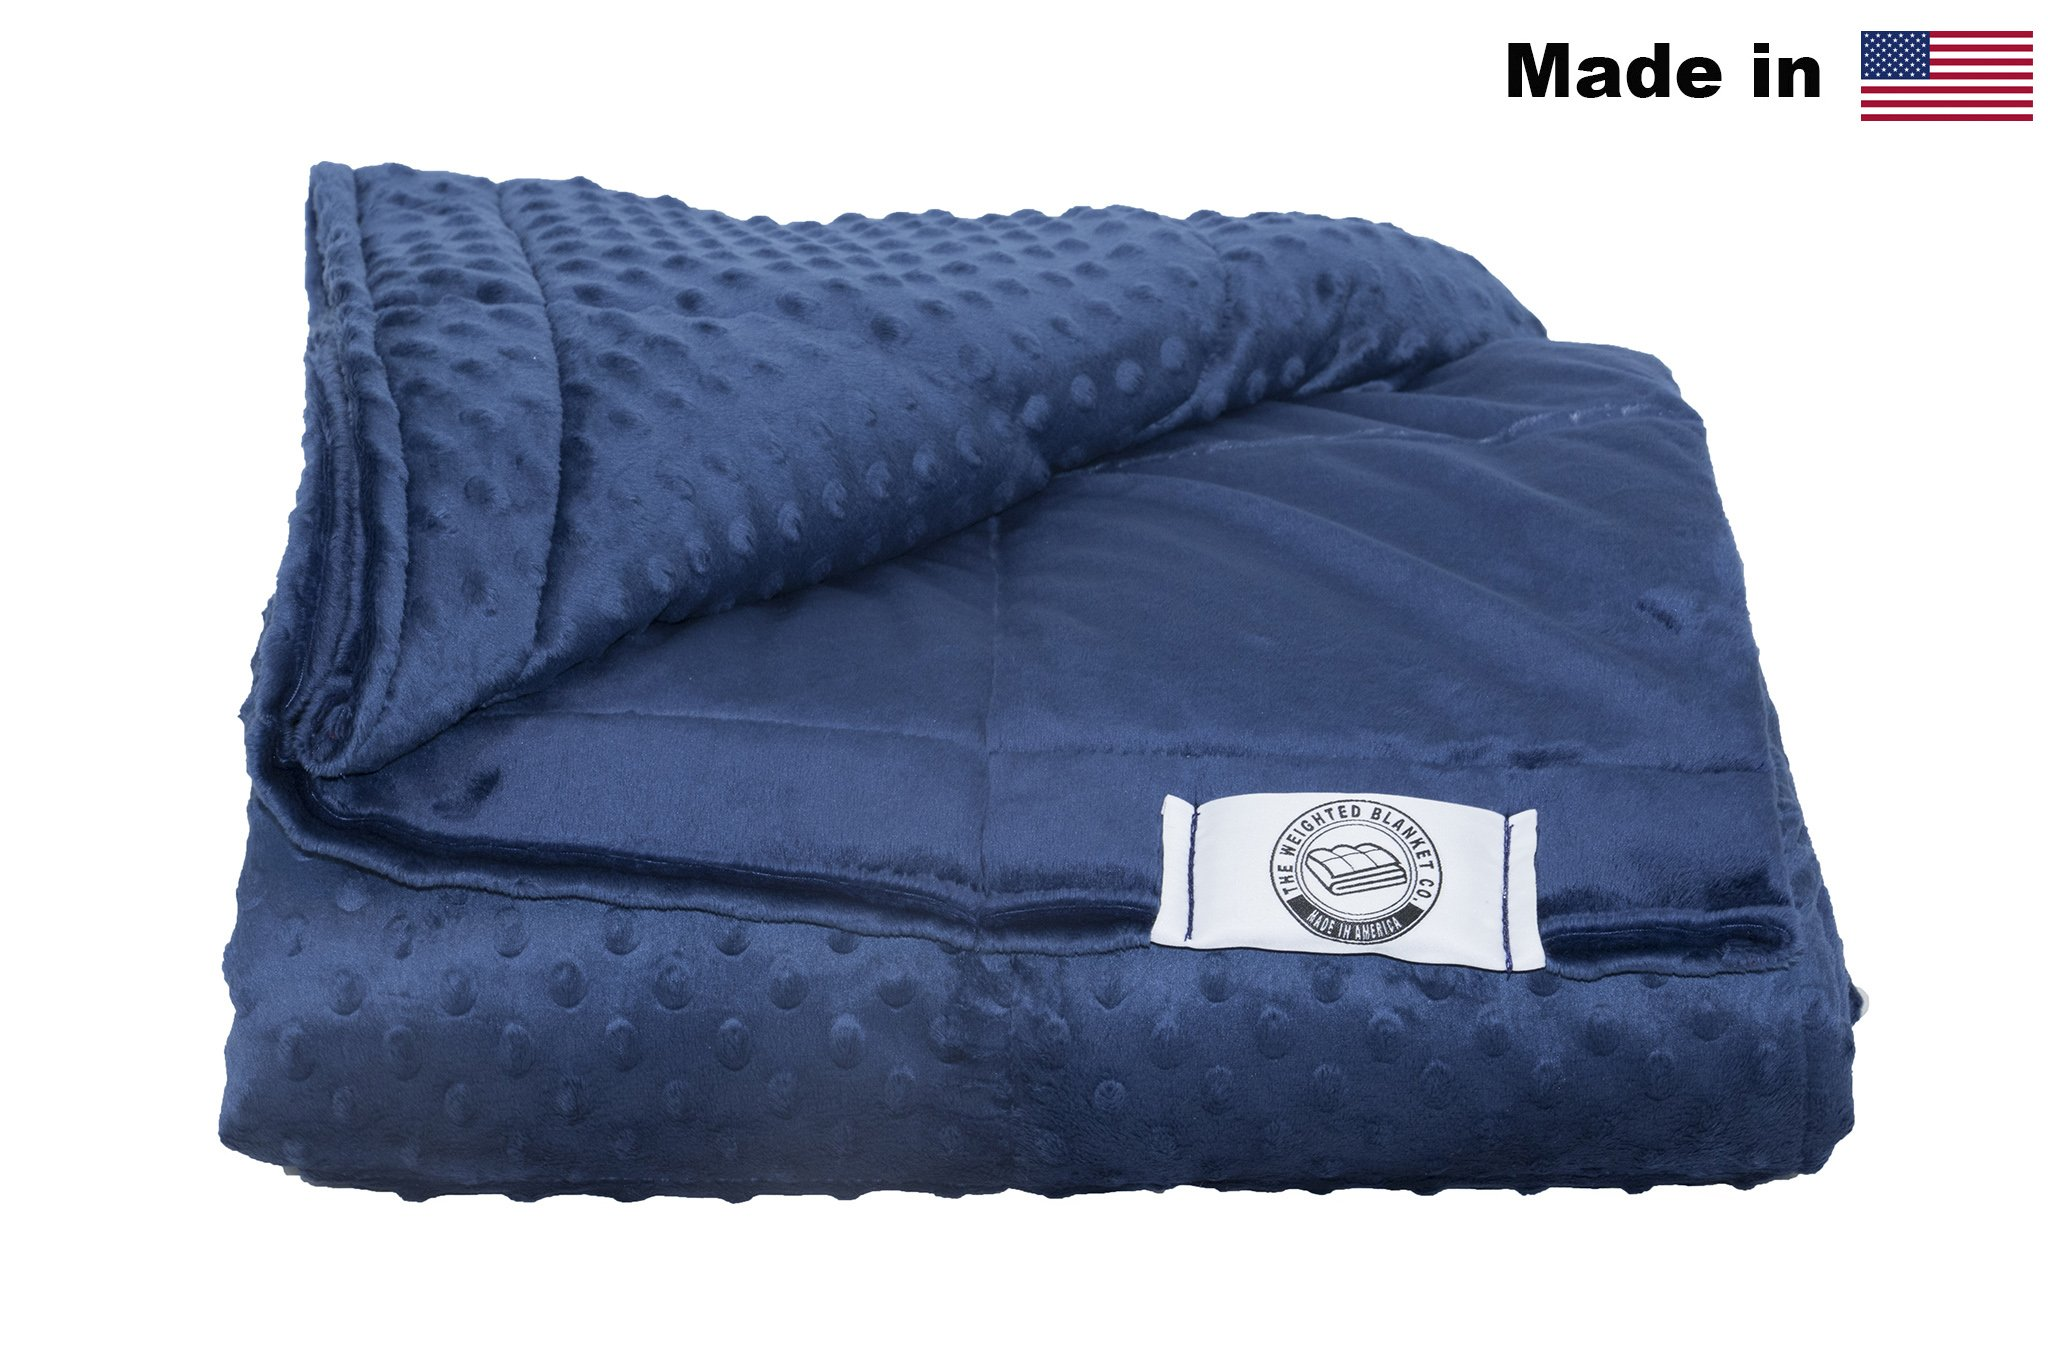 Luxury Minky Weighted Blanket -Made In America- Many Sizes & Colors (Navy, 13lb 48x80)